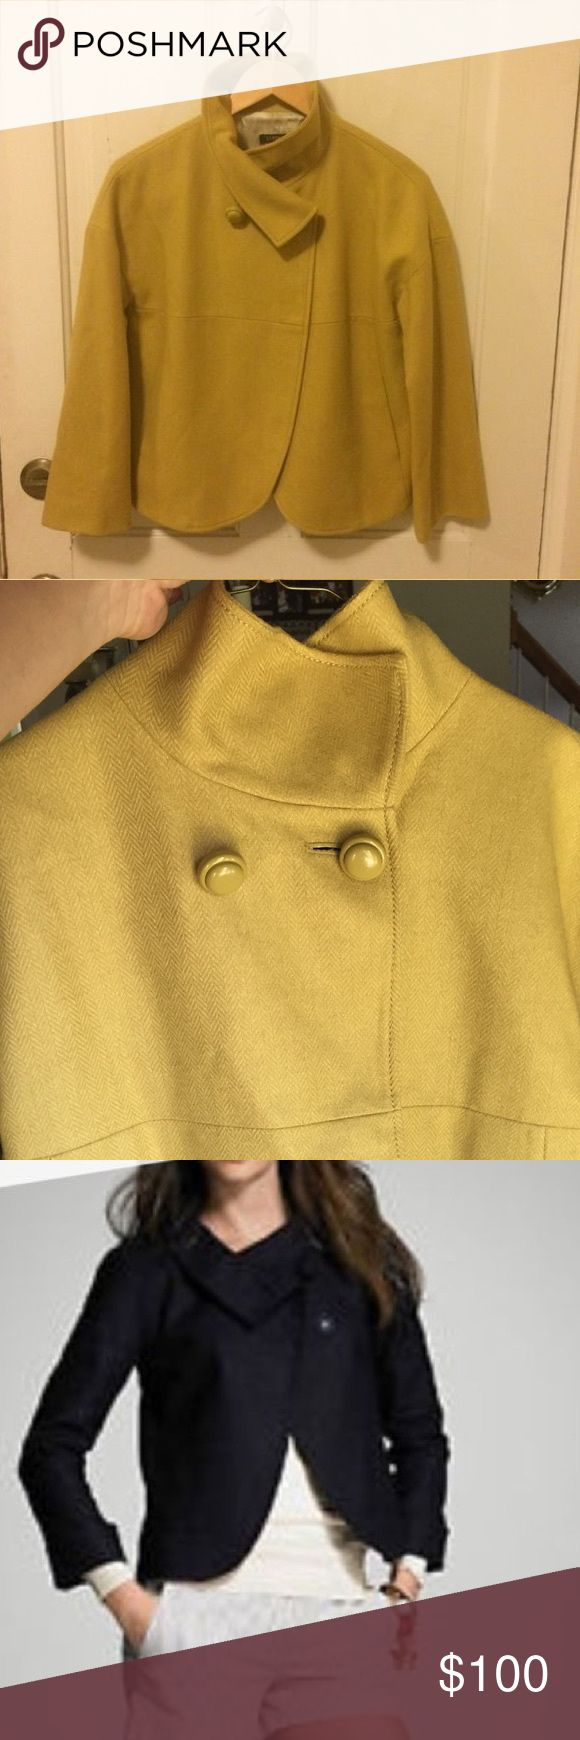 J Crew Aubrey herringbone jacket Only worn twice! Mustard color j crew wool jacket. Perfect for spring nights. Accepting offers and trades J. Crew Jackets & Coats